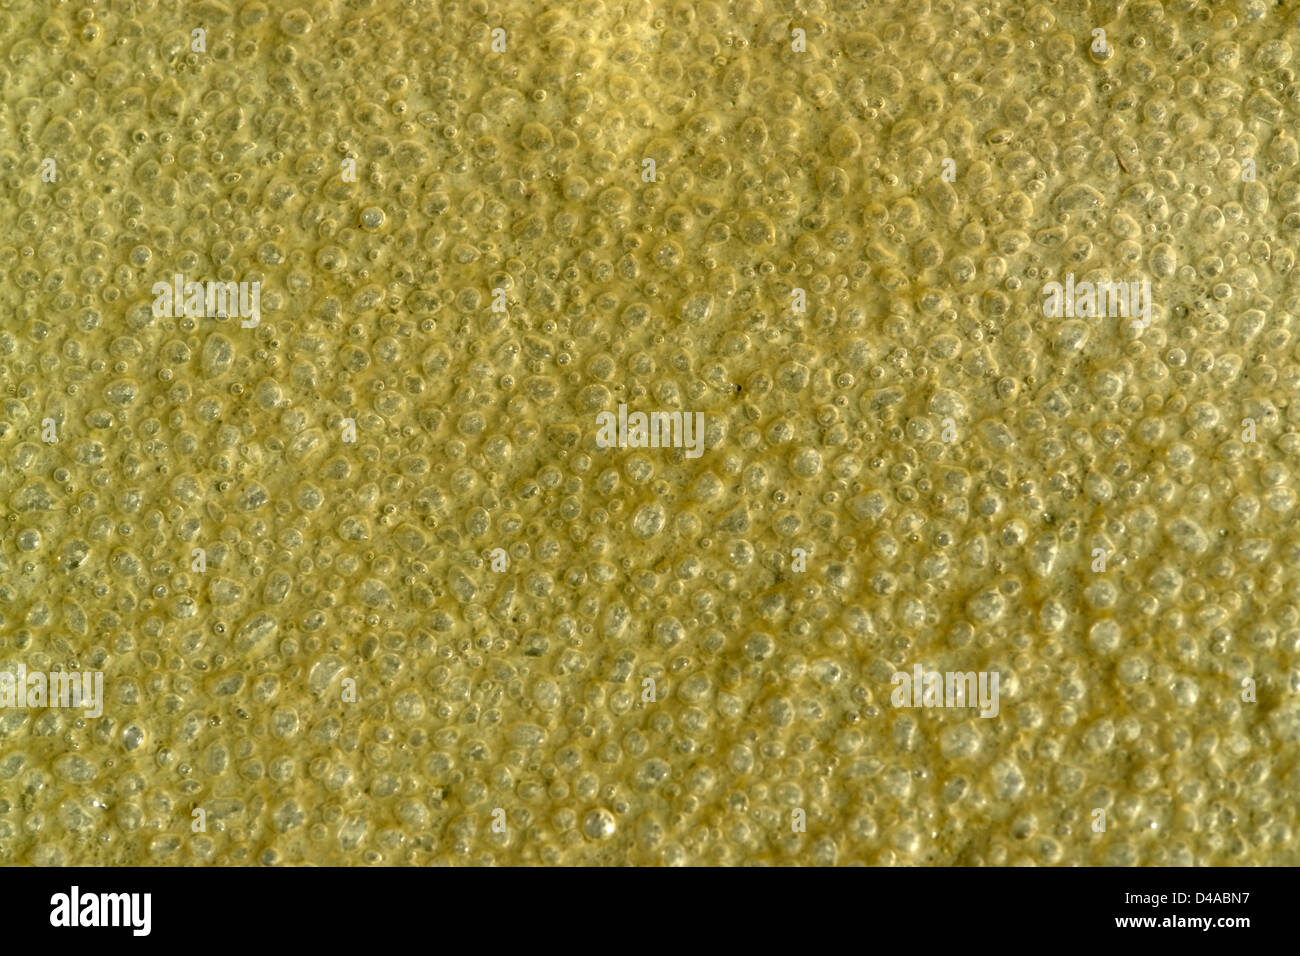 abstract detail of a strange organic substance with lots of small bubbles inside - Stock Image